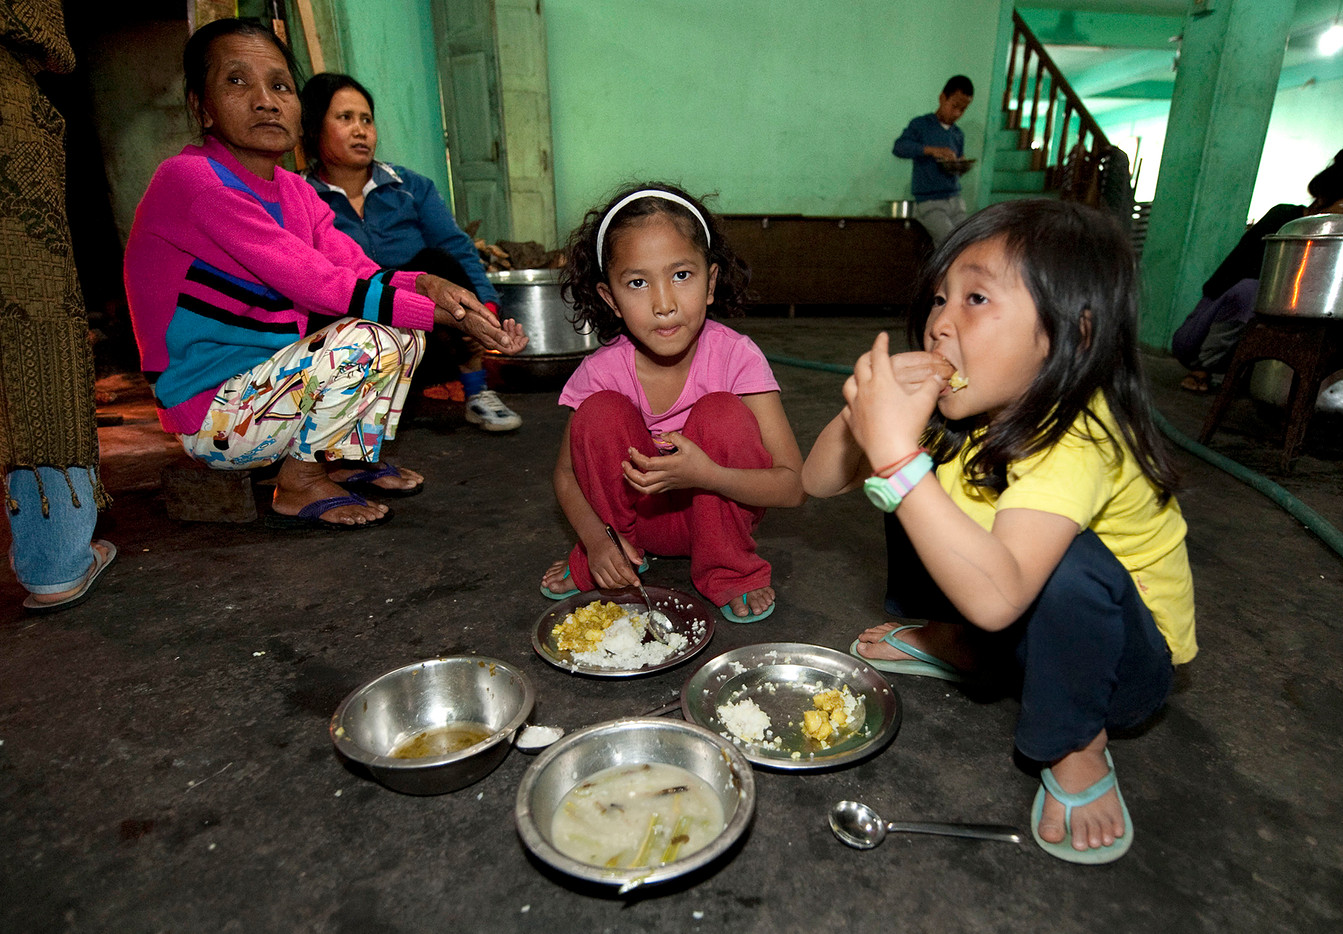 The family is so hige that it takes several sittings to feed everyone. Children eat first.